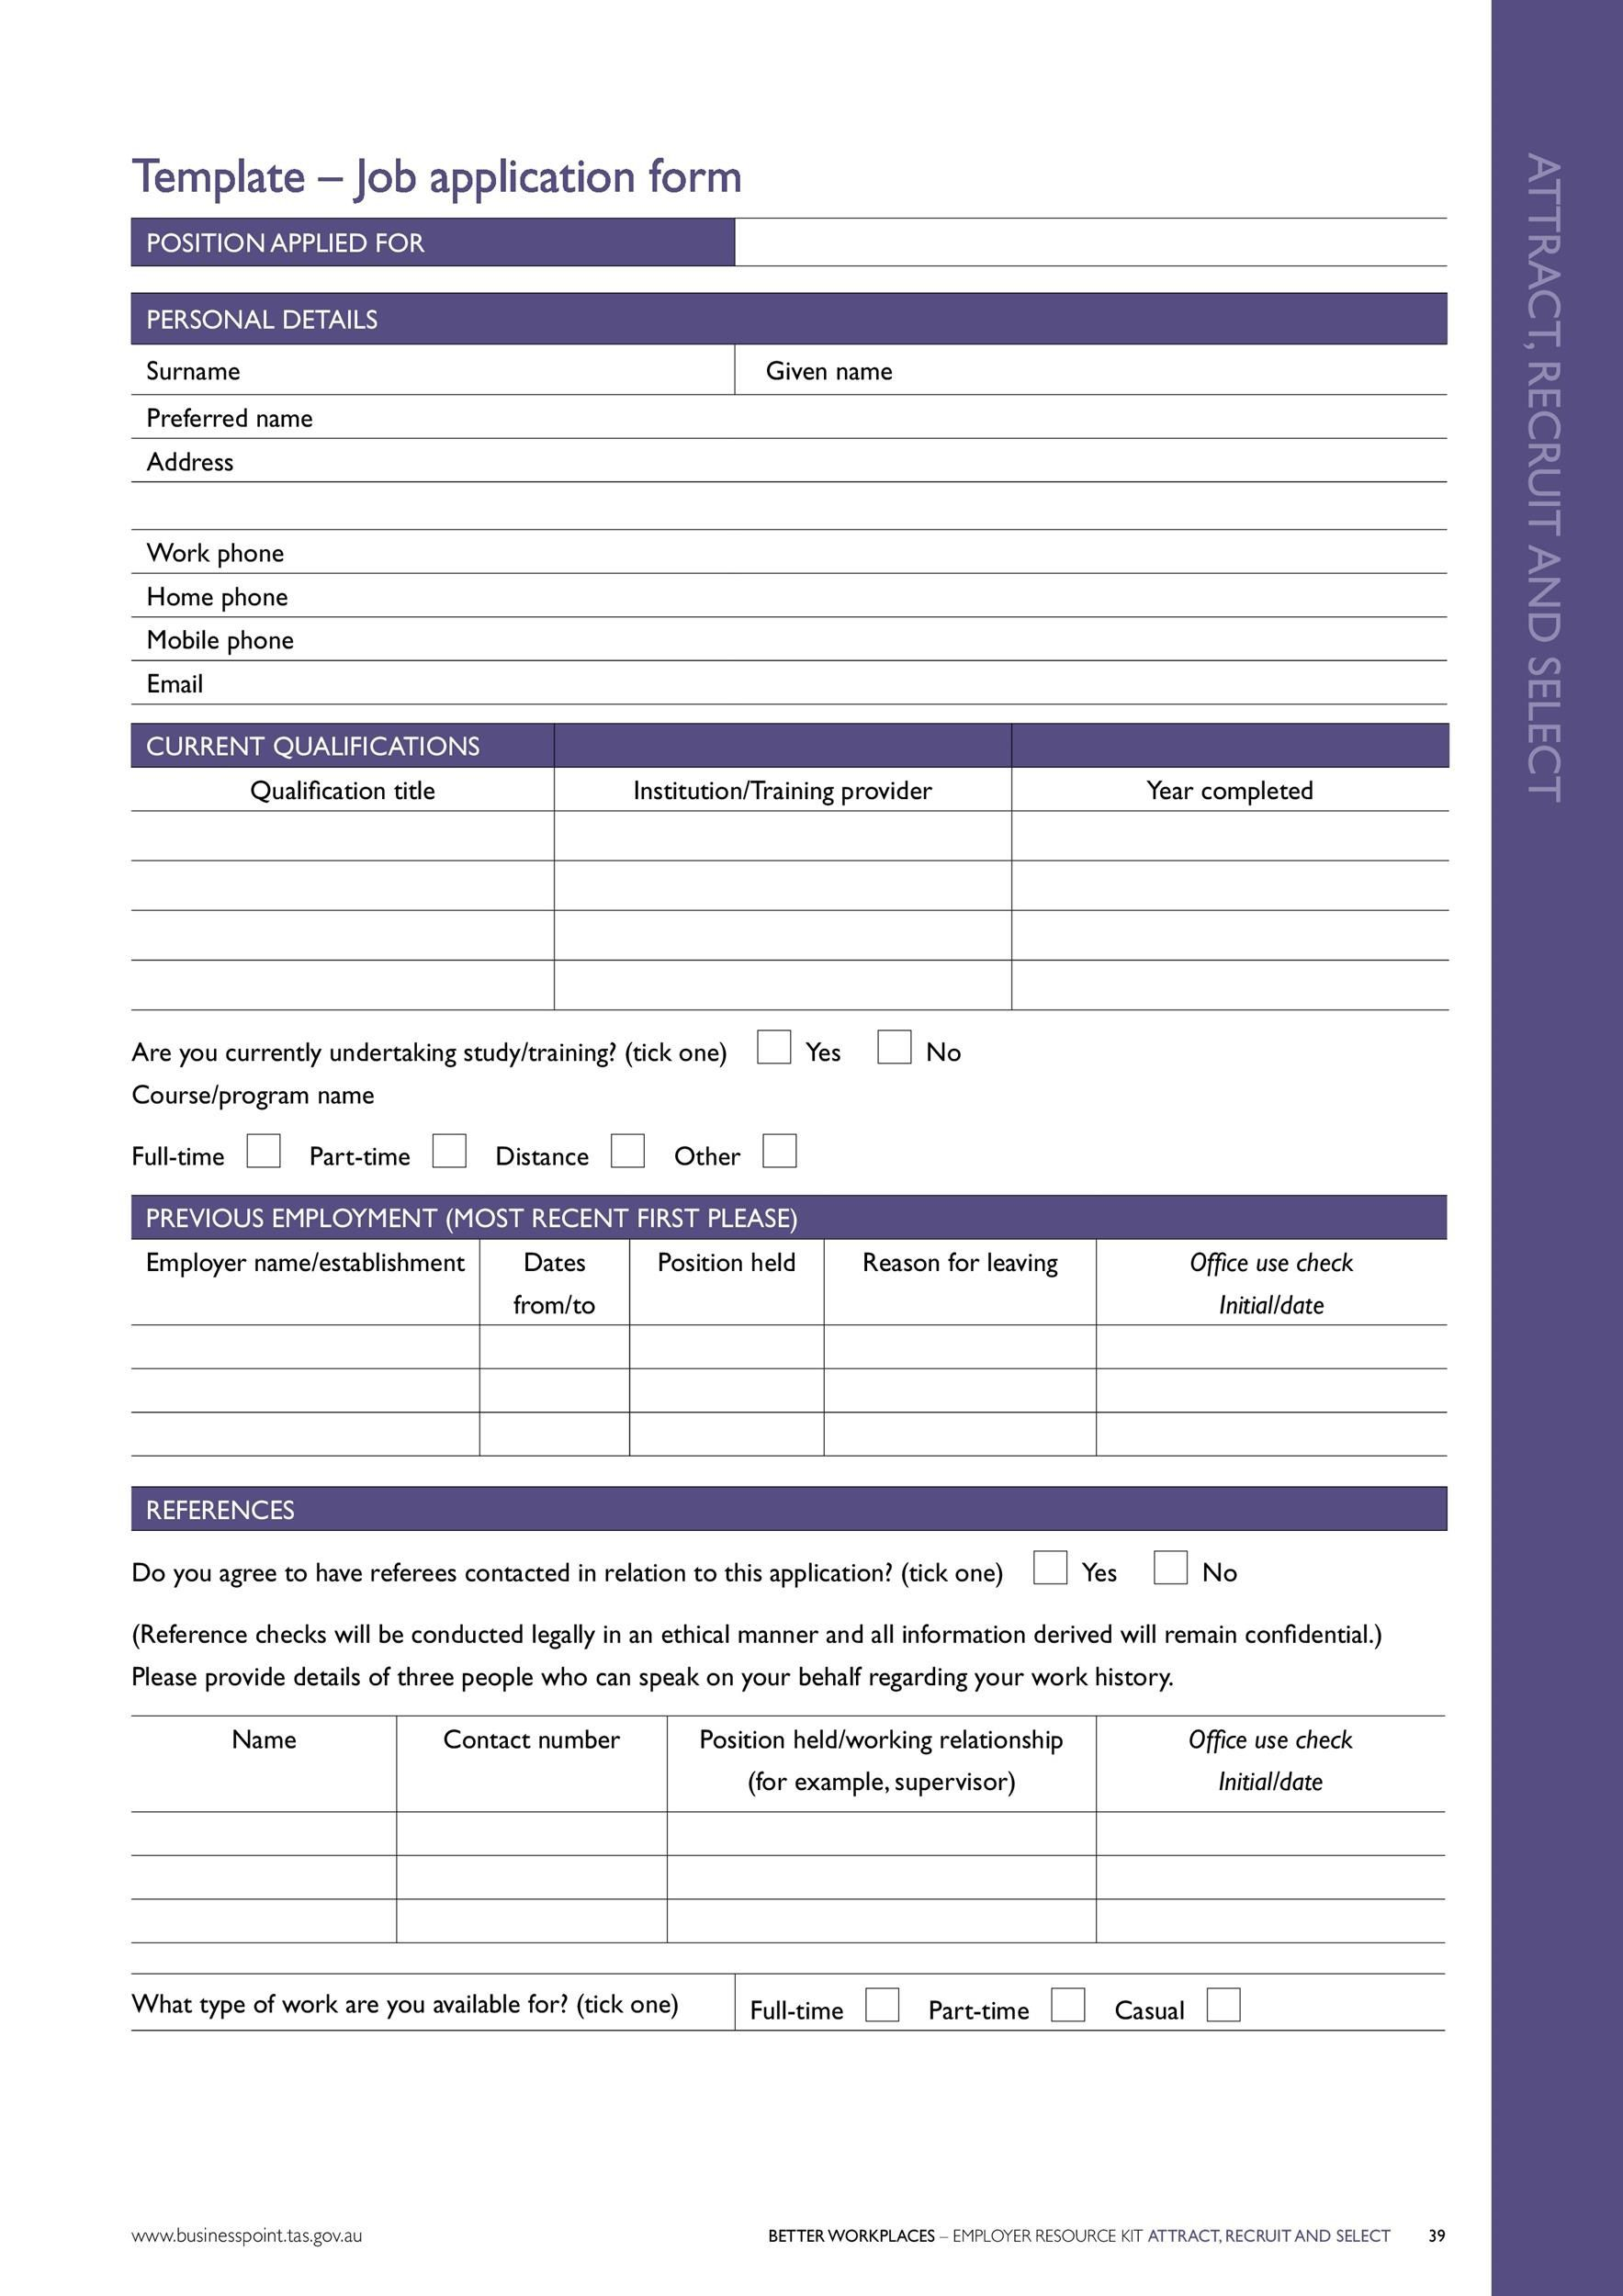 006 Wonderful Employee Application Form Template Word High Definition  Job Download Simple Example UkFull